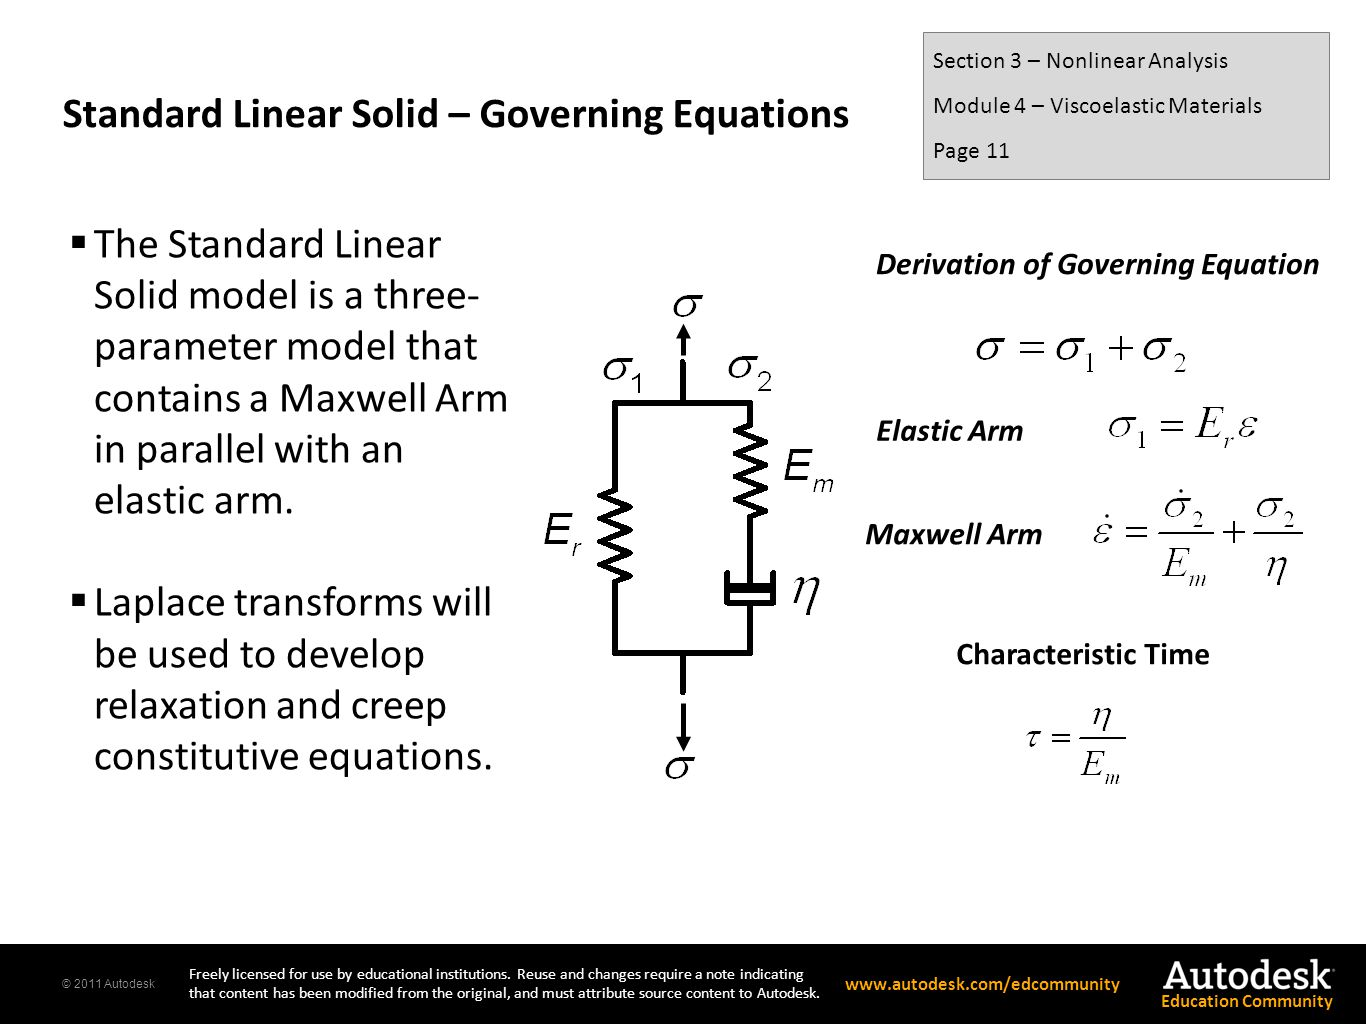 Standard Linear Solid – Governing Equations